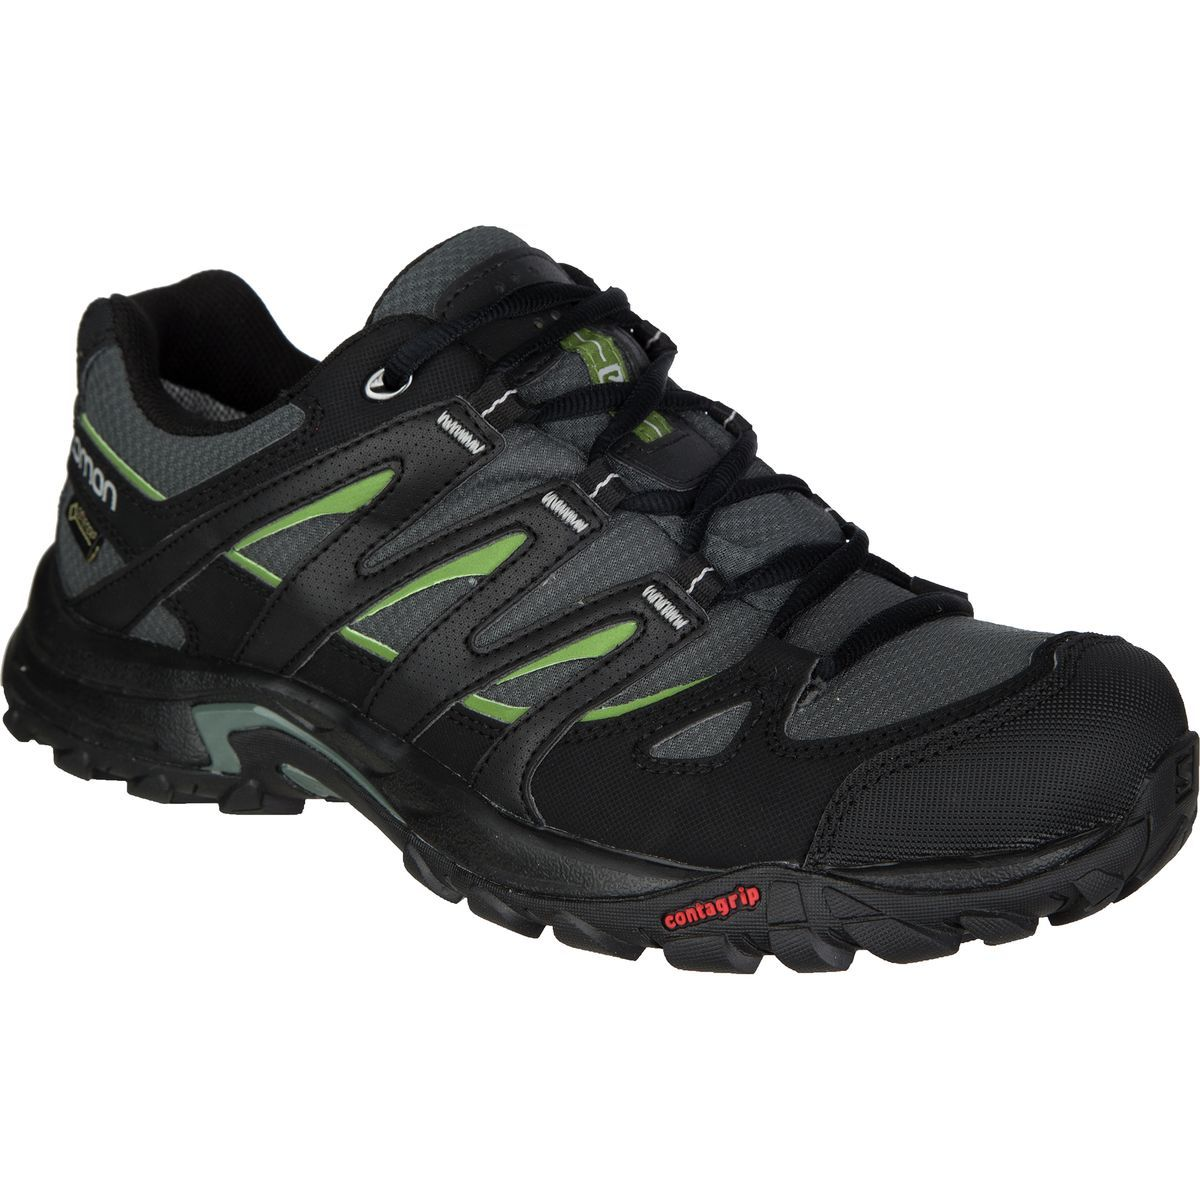 fb208e55 Salomon - Eskape GTX Hiking Shoe - Men's - TT/Black/Dark Turf Green ...